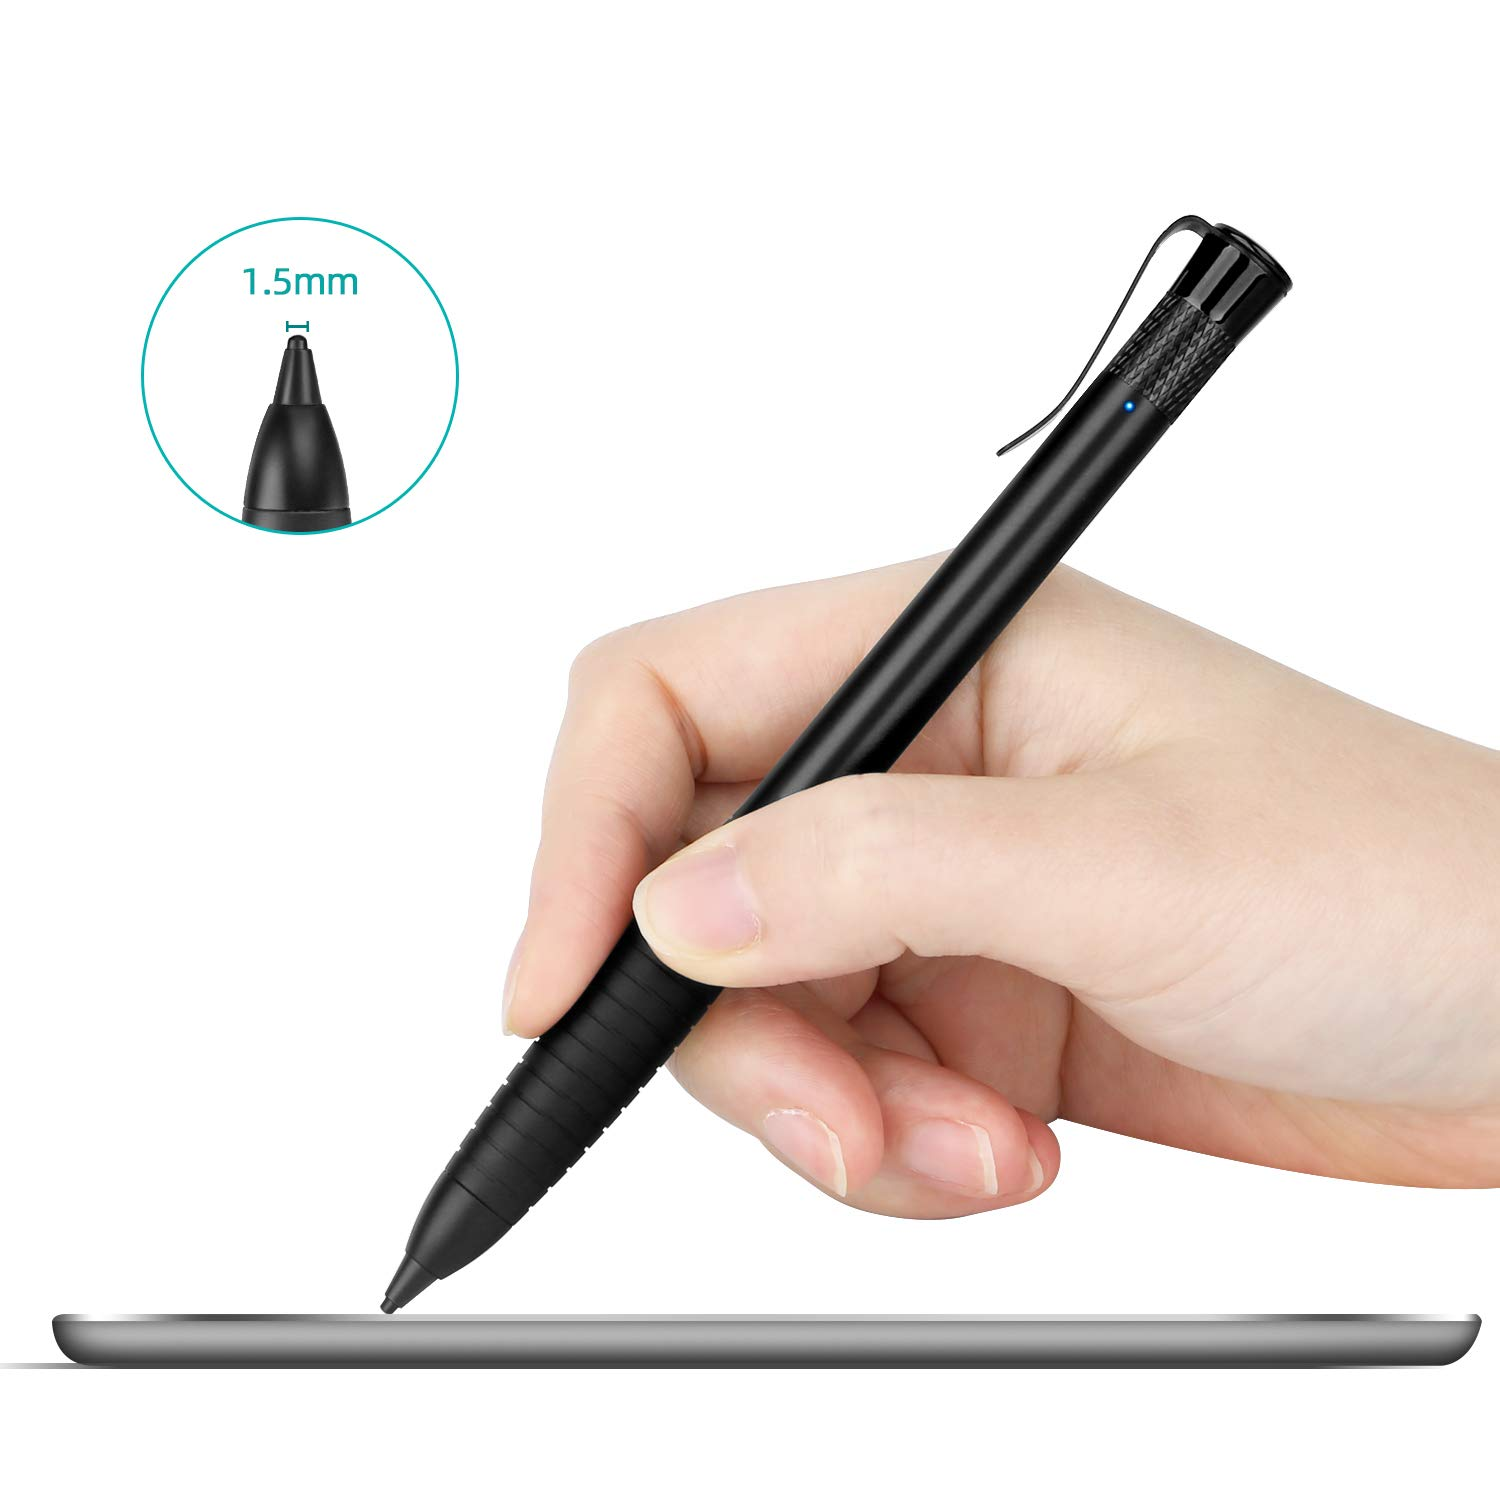 MEKO 2nd Generation 1.5mm Fine Tip Active Stylus Pen for Apple iPad Digital Pencil Compatible with All Touchscreen Cellphones, Tablets- Black